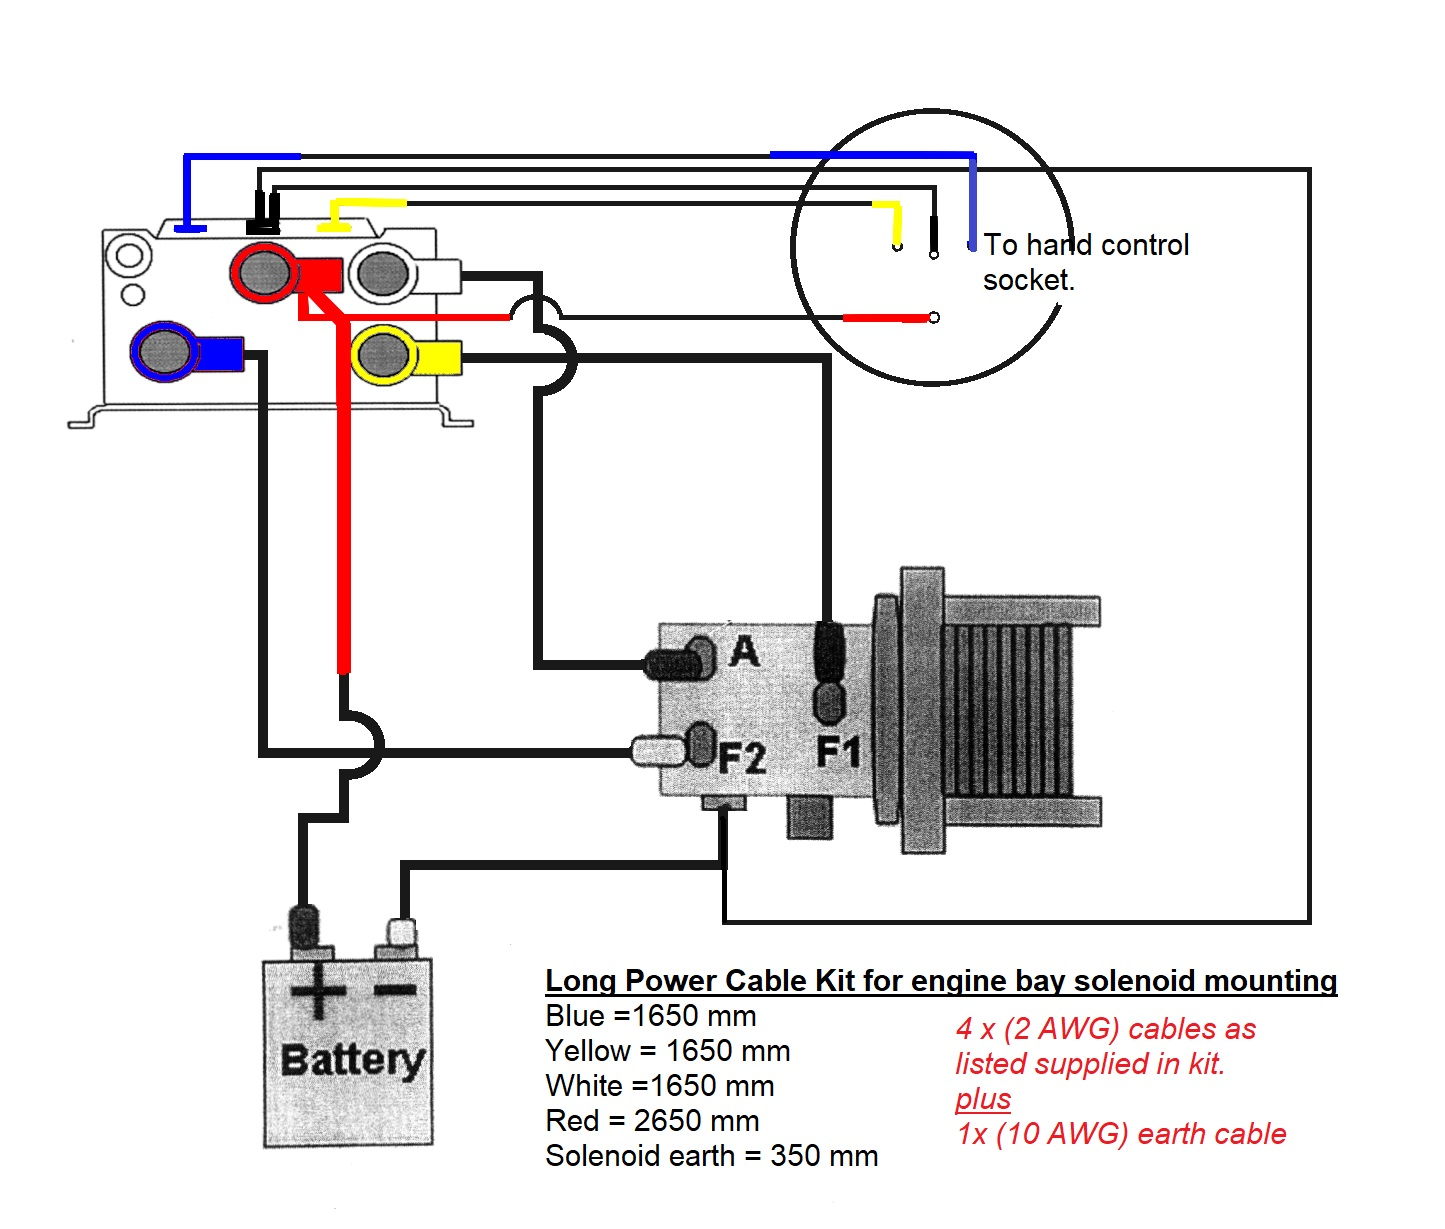 Badlands 12000 Winch Wiring Diagram from www.bandcwinches.com.au